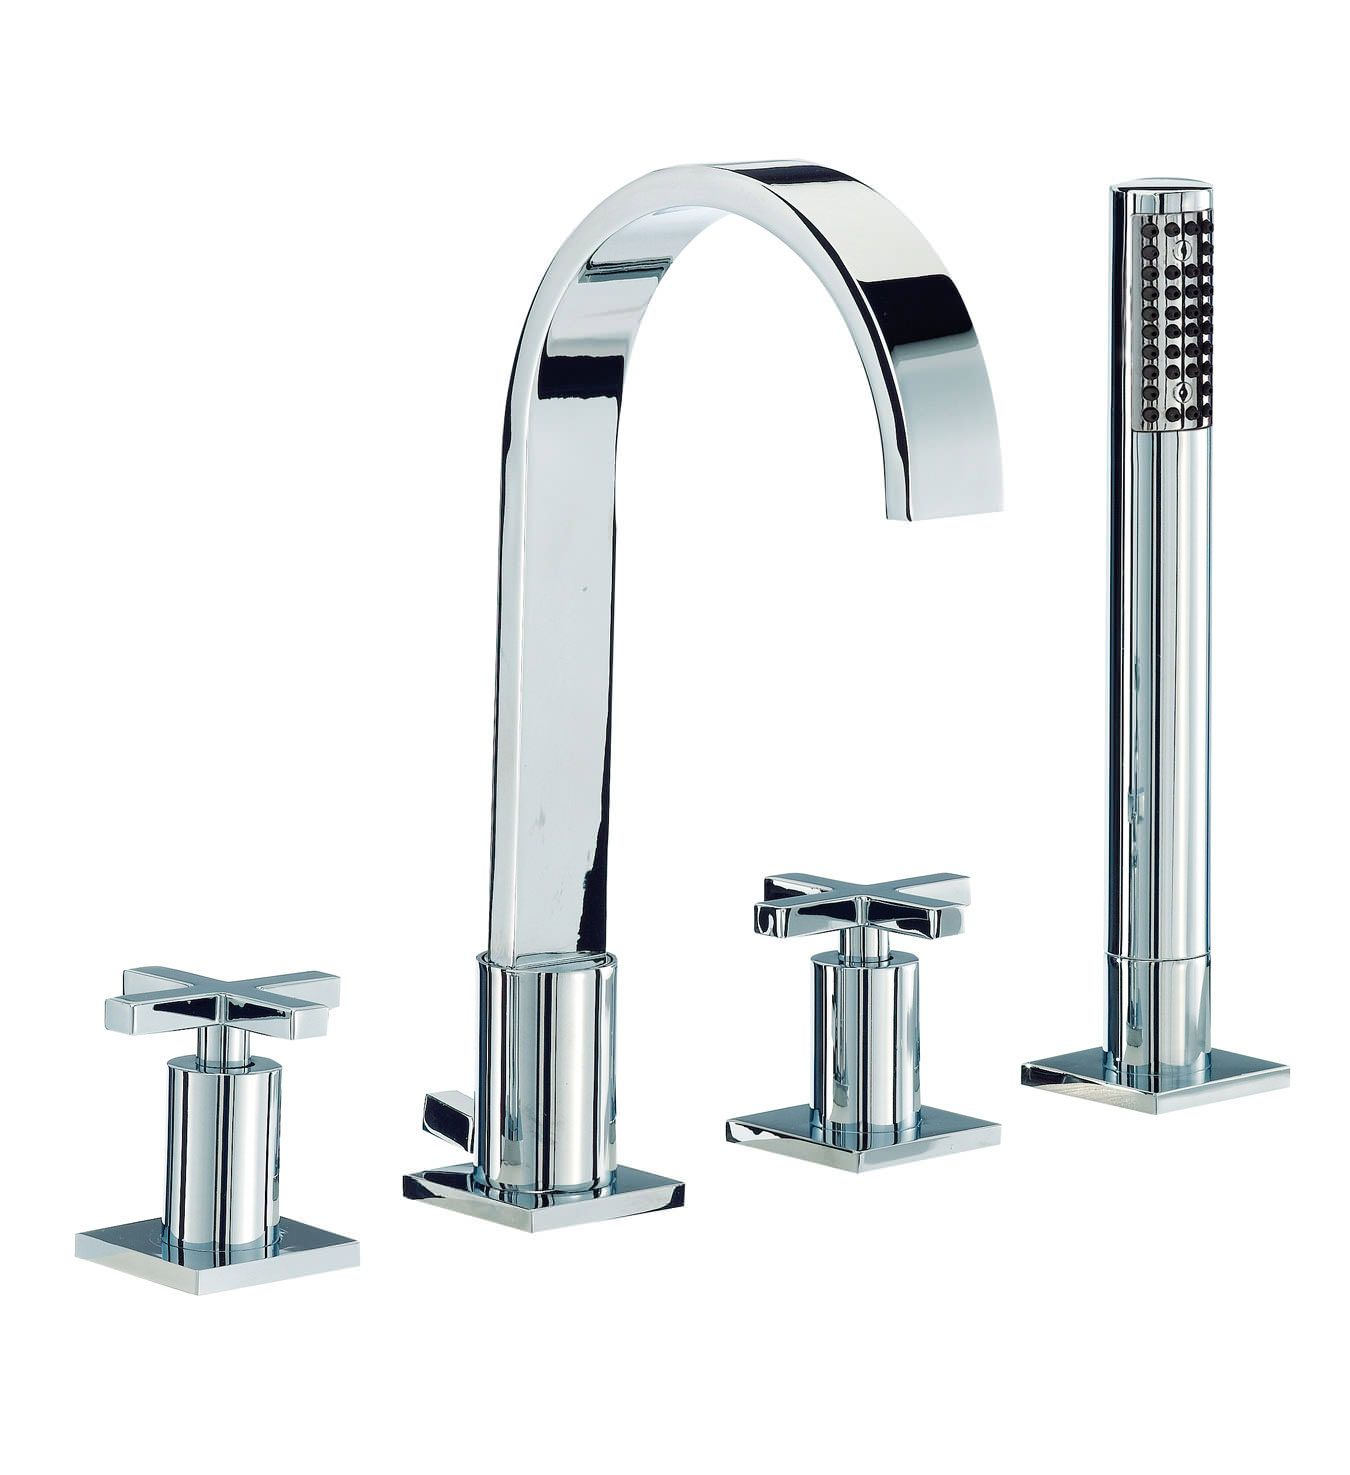 Mayfair Surf 4 Tap Hole Bath Shower Mixer Tap With Shower Kit ...